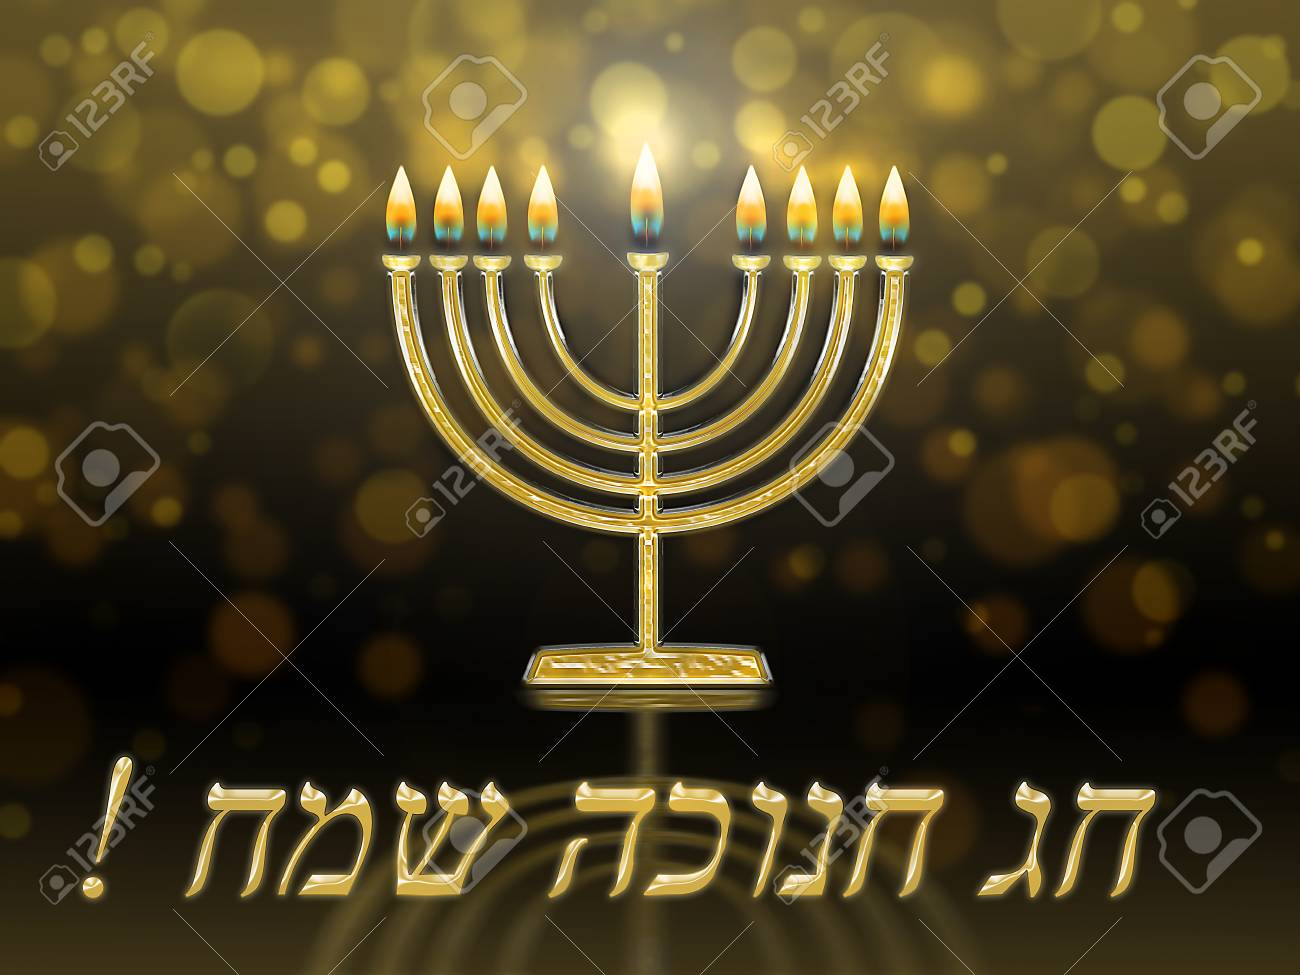 Greeting Card With Inscription In Hebrew Happy Hanukkah Golden